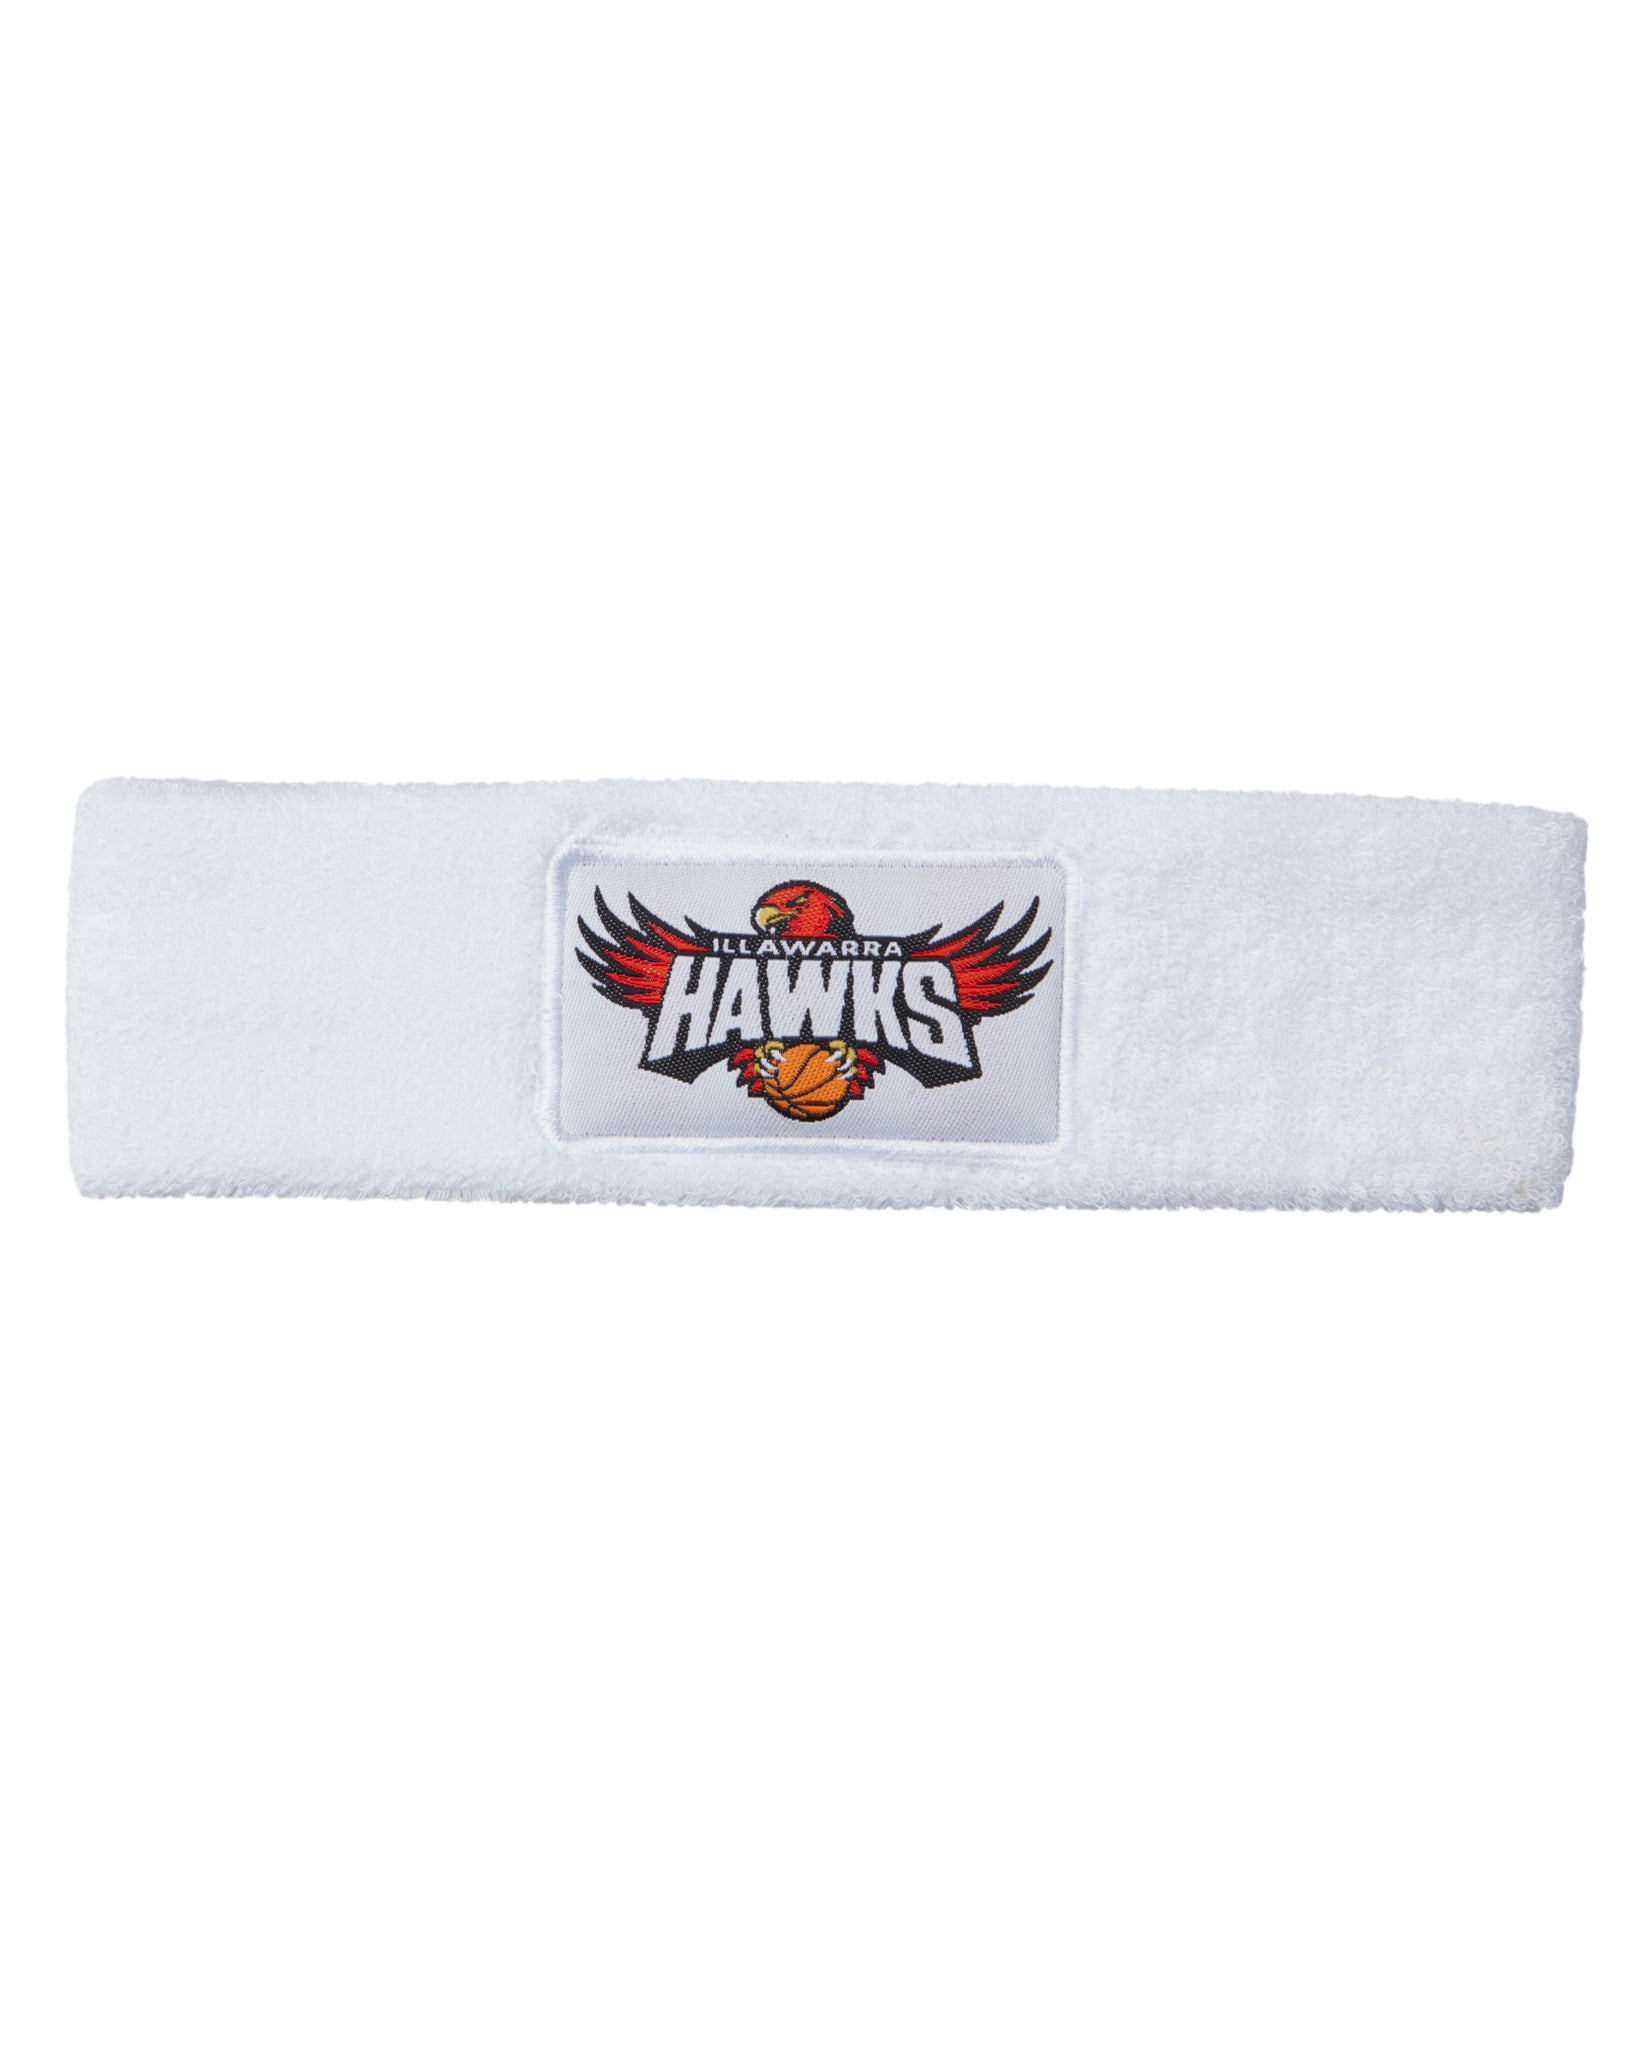 Illawarra Hawks 19/20 Official NBL Headband